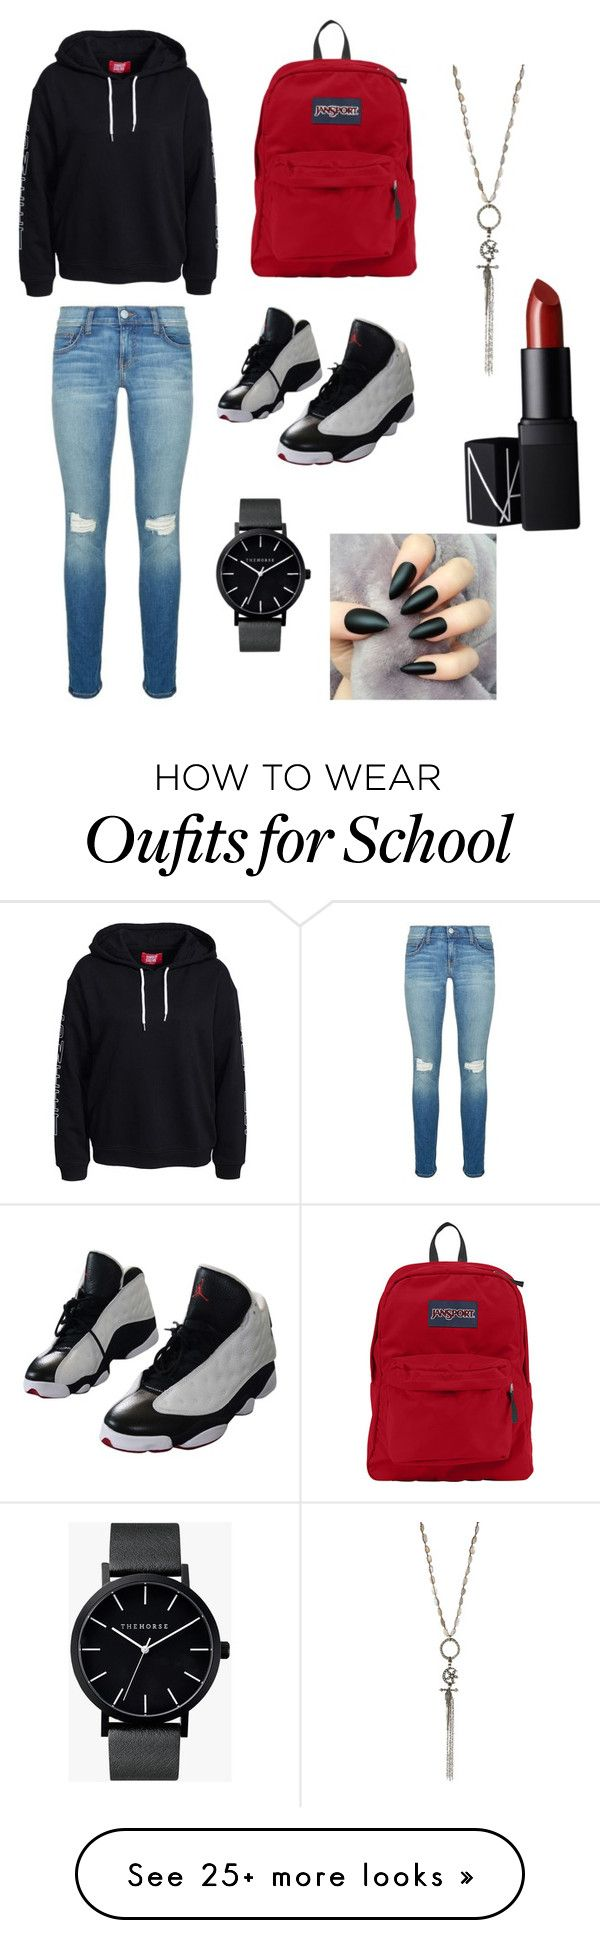 """outfit for school"" by captainncali on Polyvore featuring moda, Rebecca Minkoff, NIKE, JanSport, The Horse, Love Heals e NARS Cosmetics"